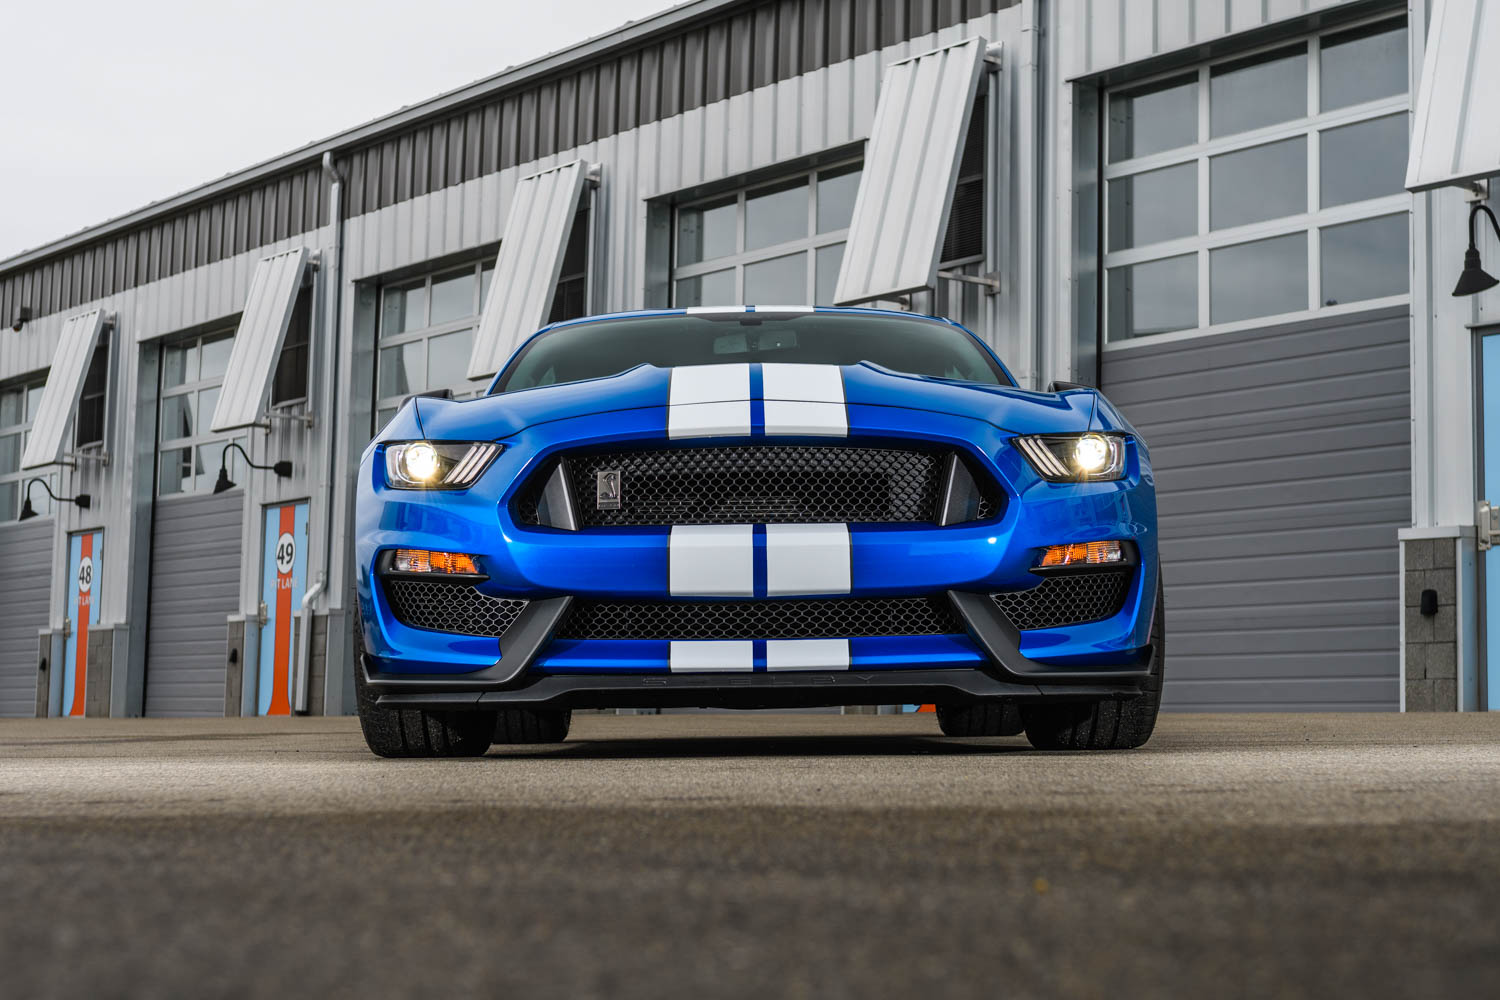 2019 Ford Mustang Shelby GT350 low front